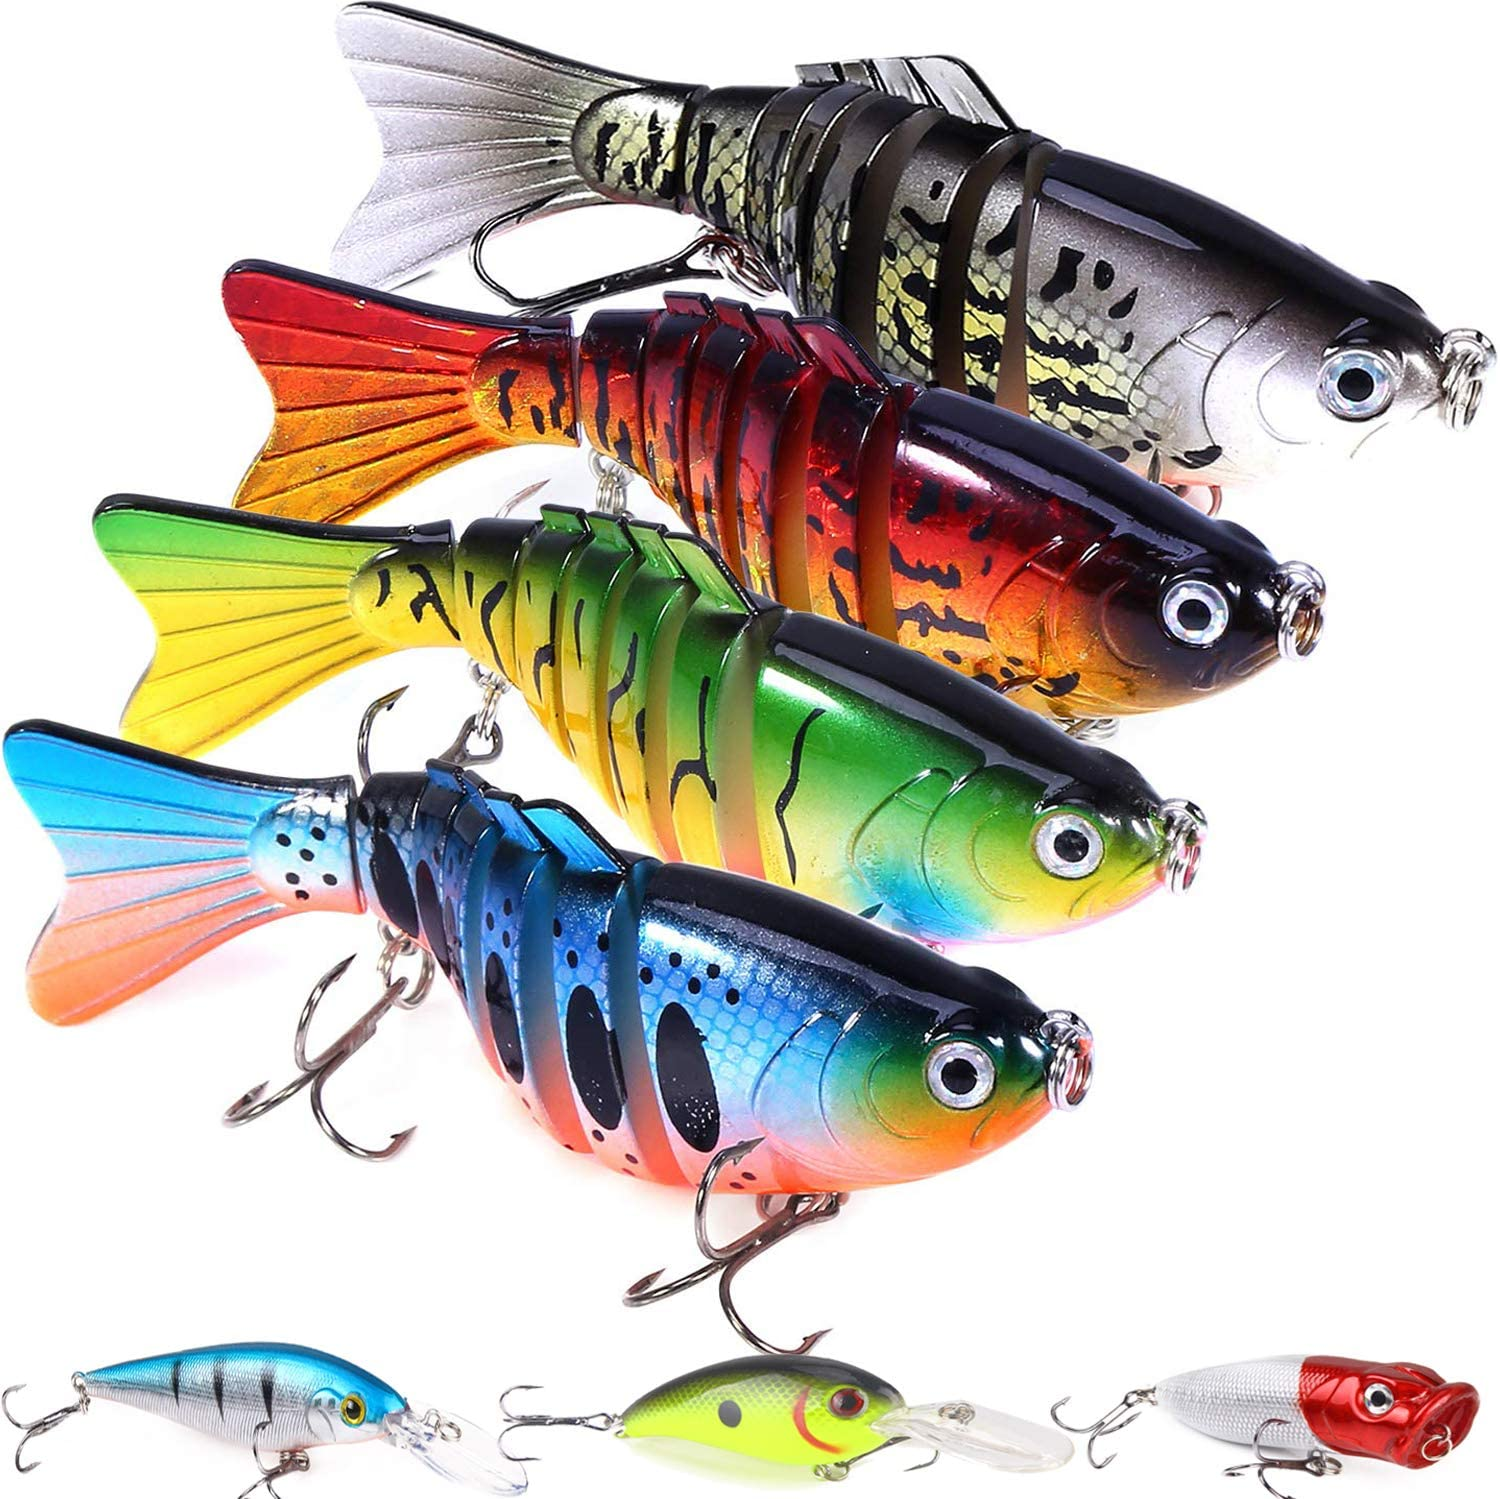 Fishing Denver Mall Lures with a Under blast sales Tackle Lifelike Bass Lur Box